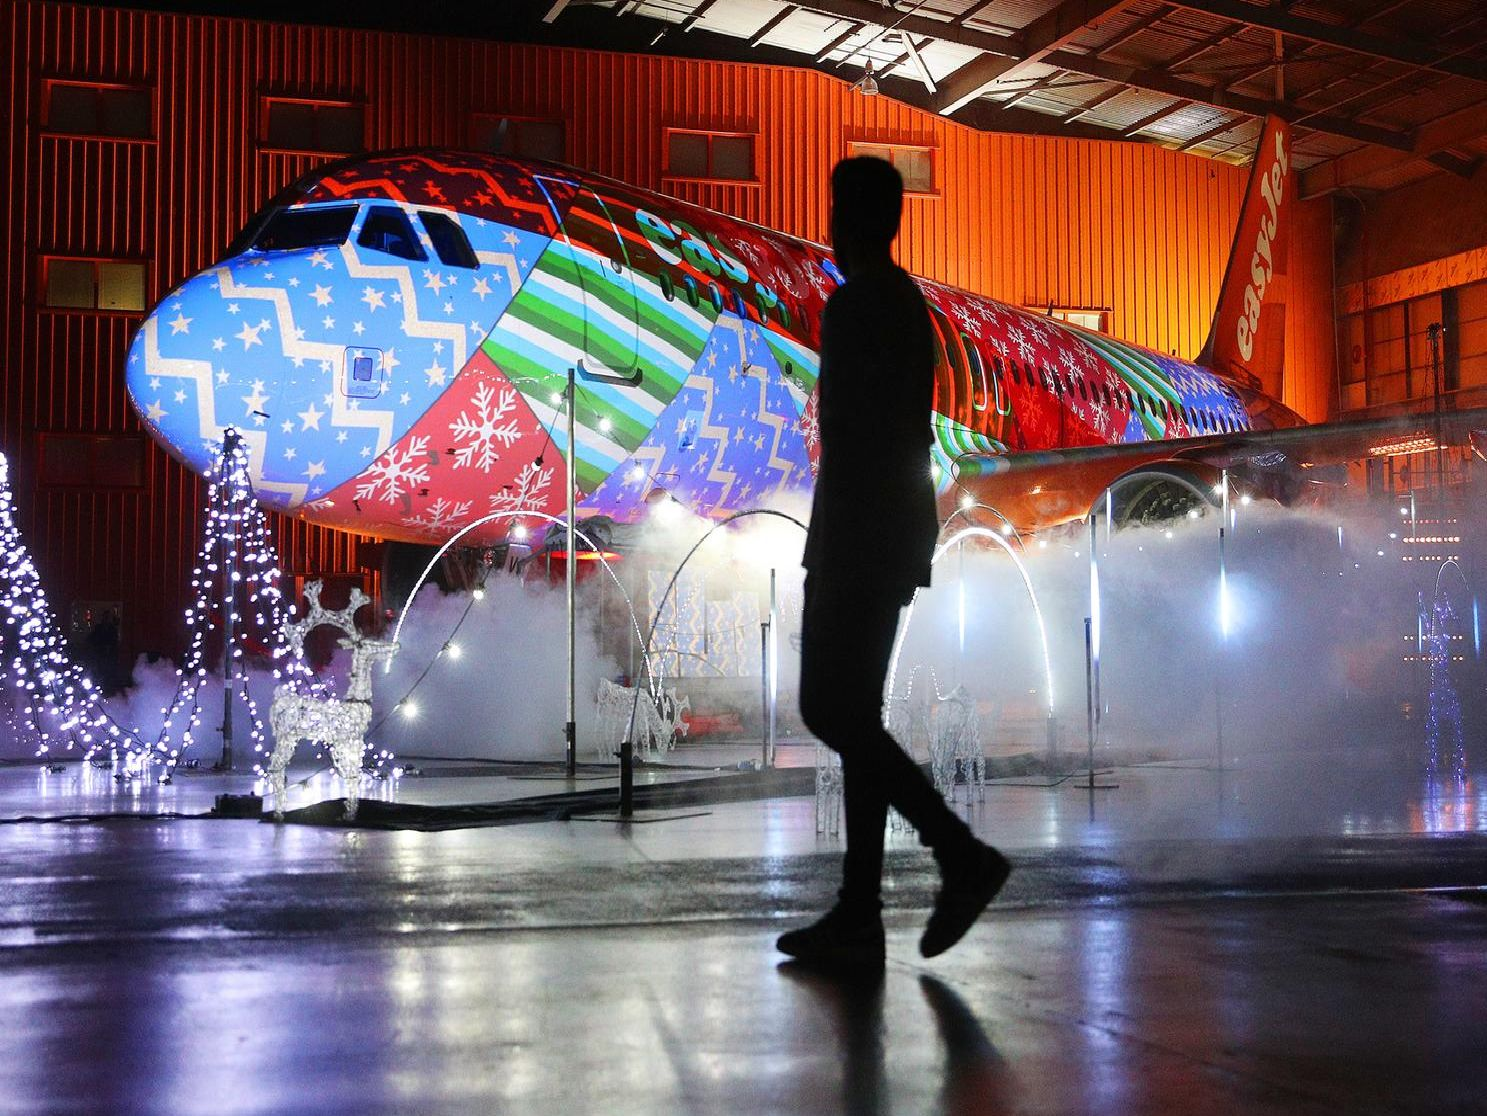 Christmas lights easyJet style at Luton Airport. Scroll through our gallery for some brilliant pictures